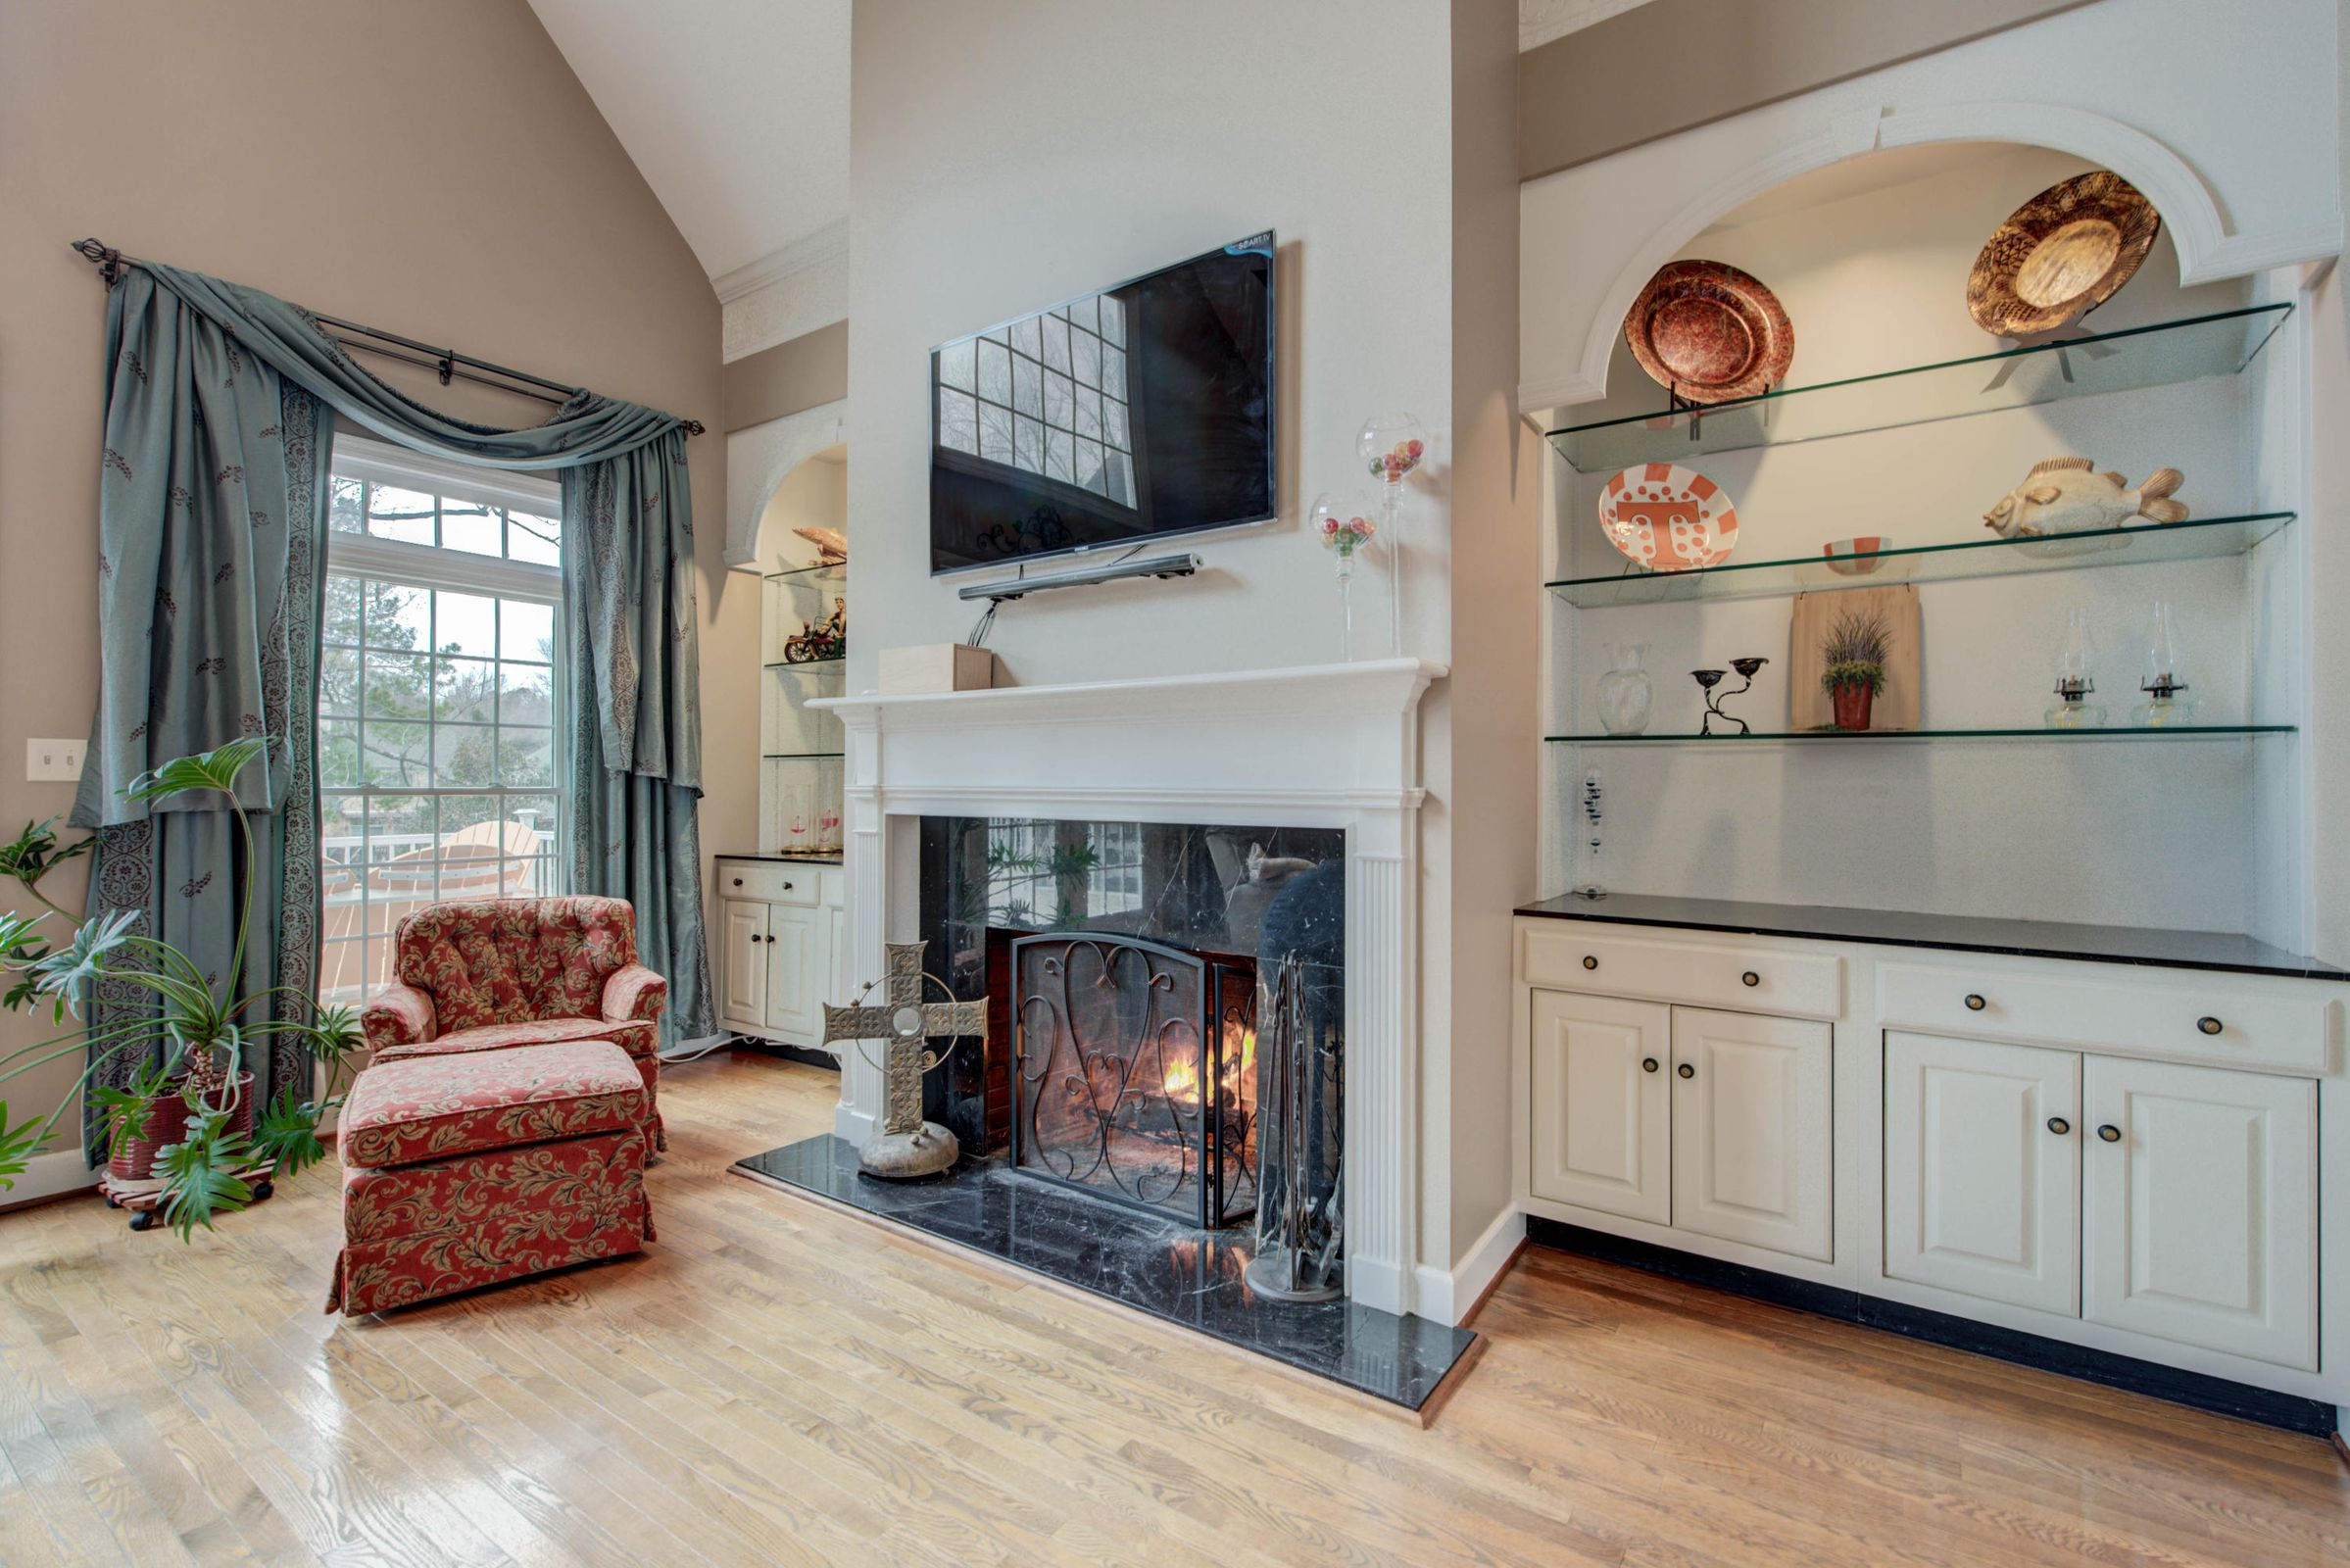 WOOD BURNING FIREPLACE & BUILT-INS